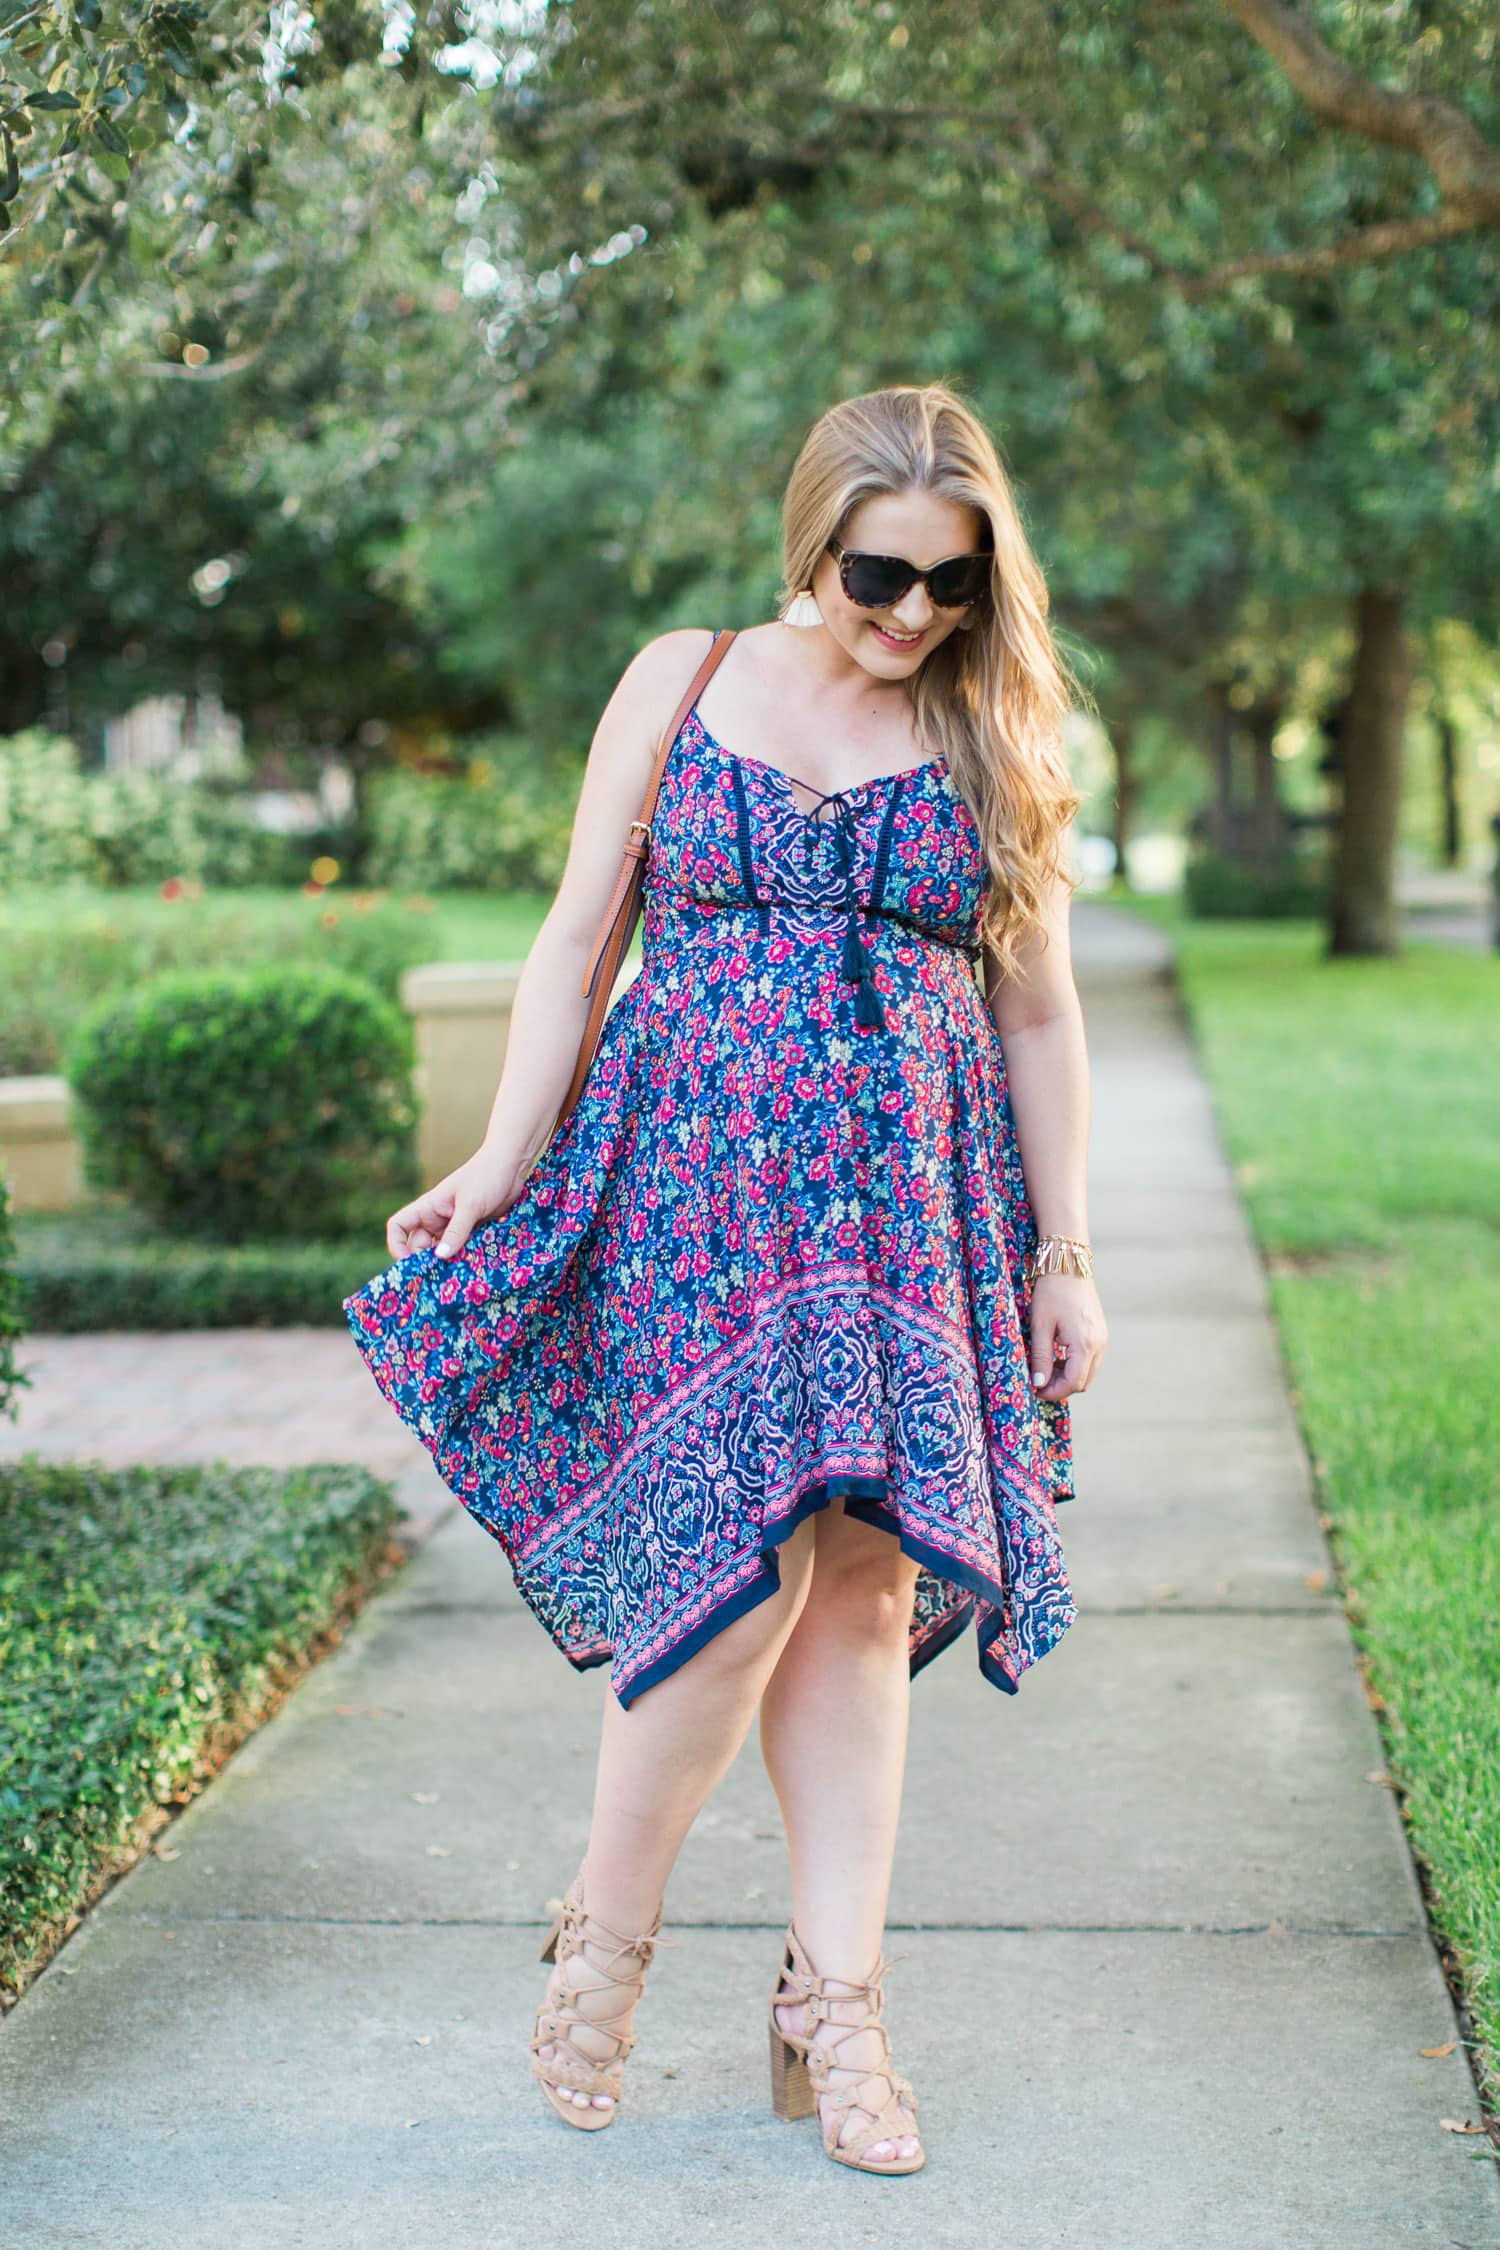 How to build confidence cute summer dress maternity fashion Ashley Brooke Nicholas beauty blogger